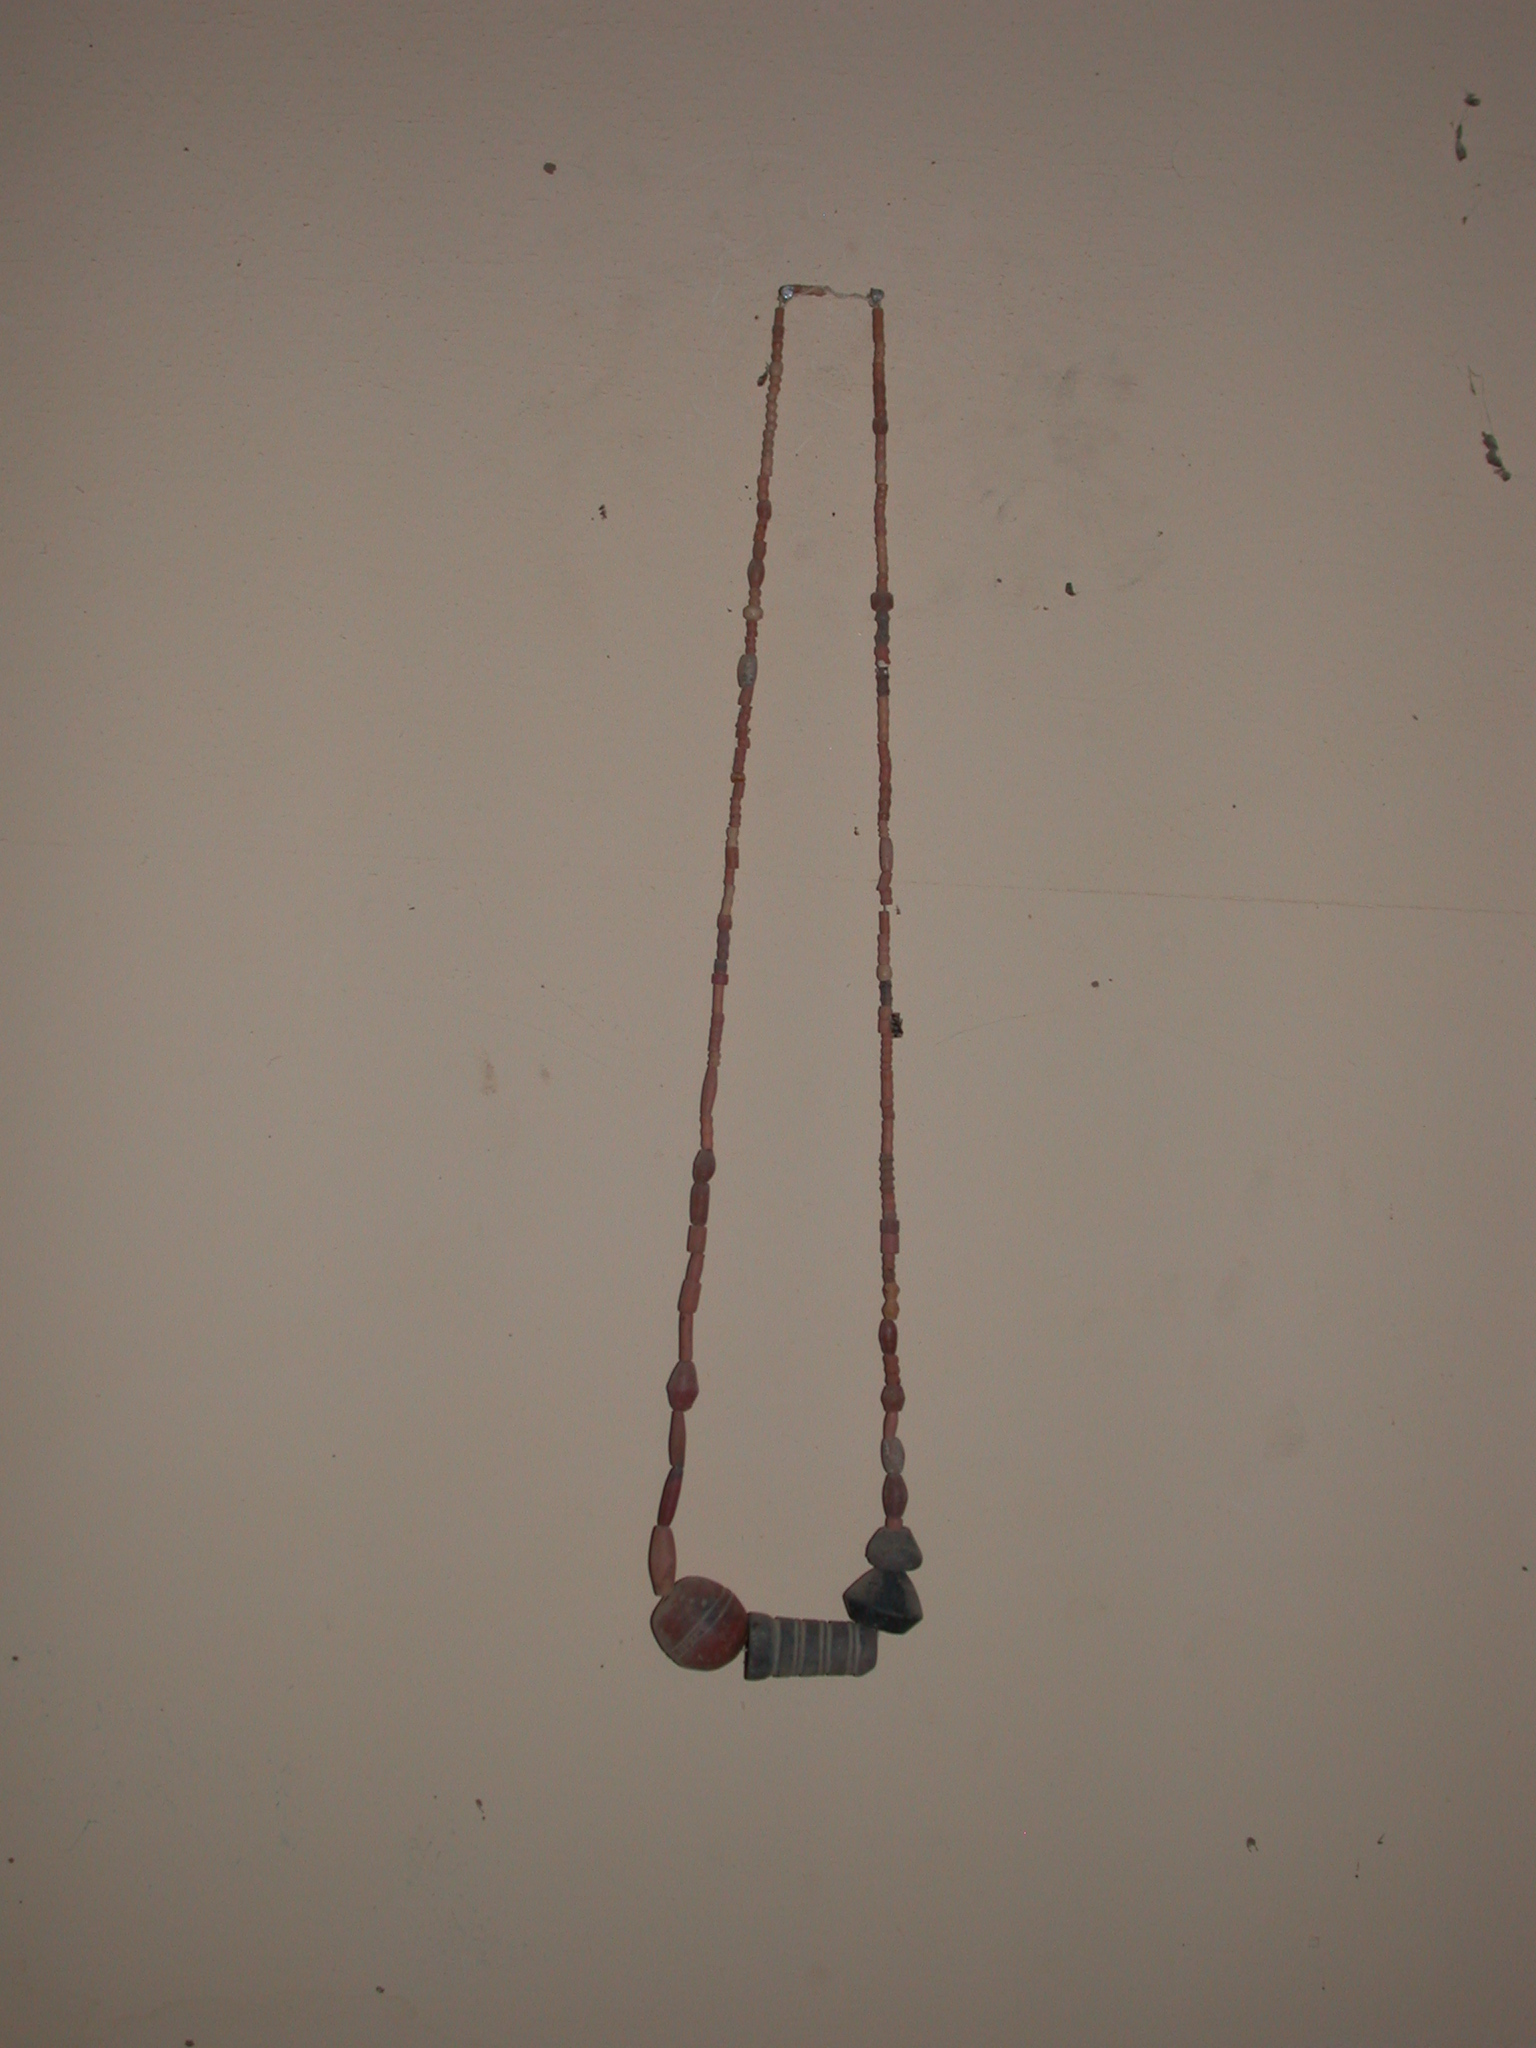 Beaded Necklace, Timbuktu Ethnological Museum, Timbuktu, Mali